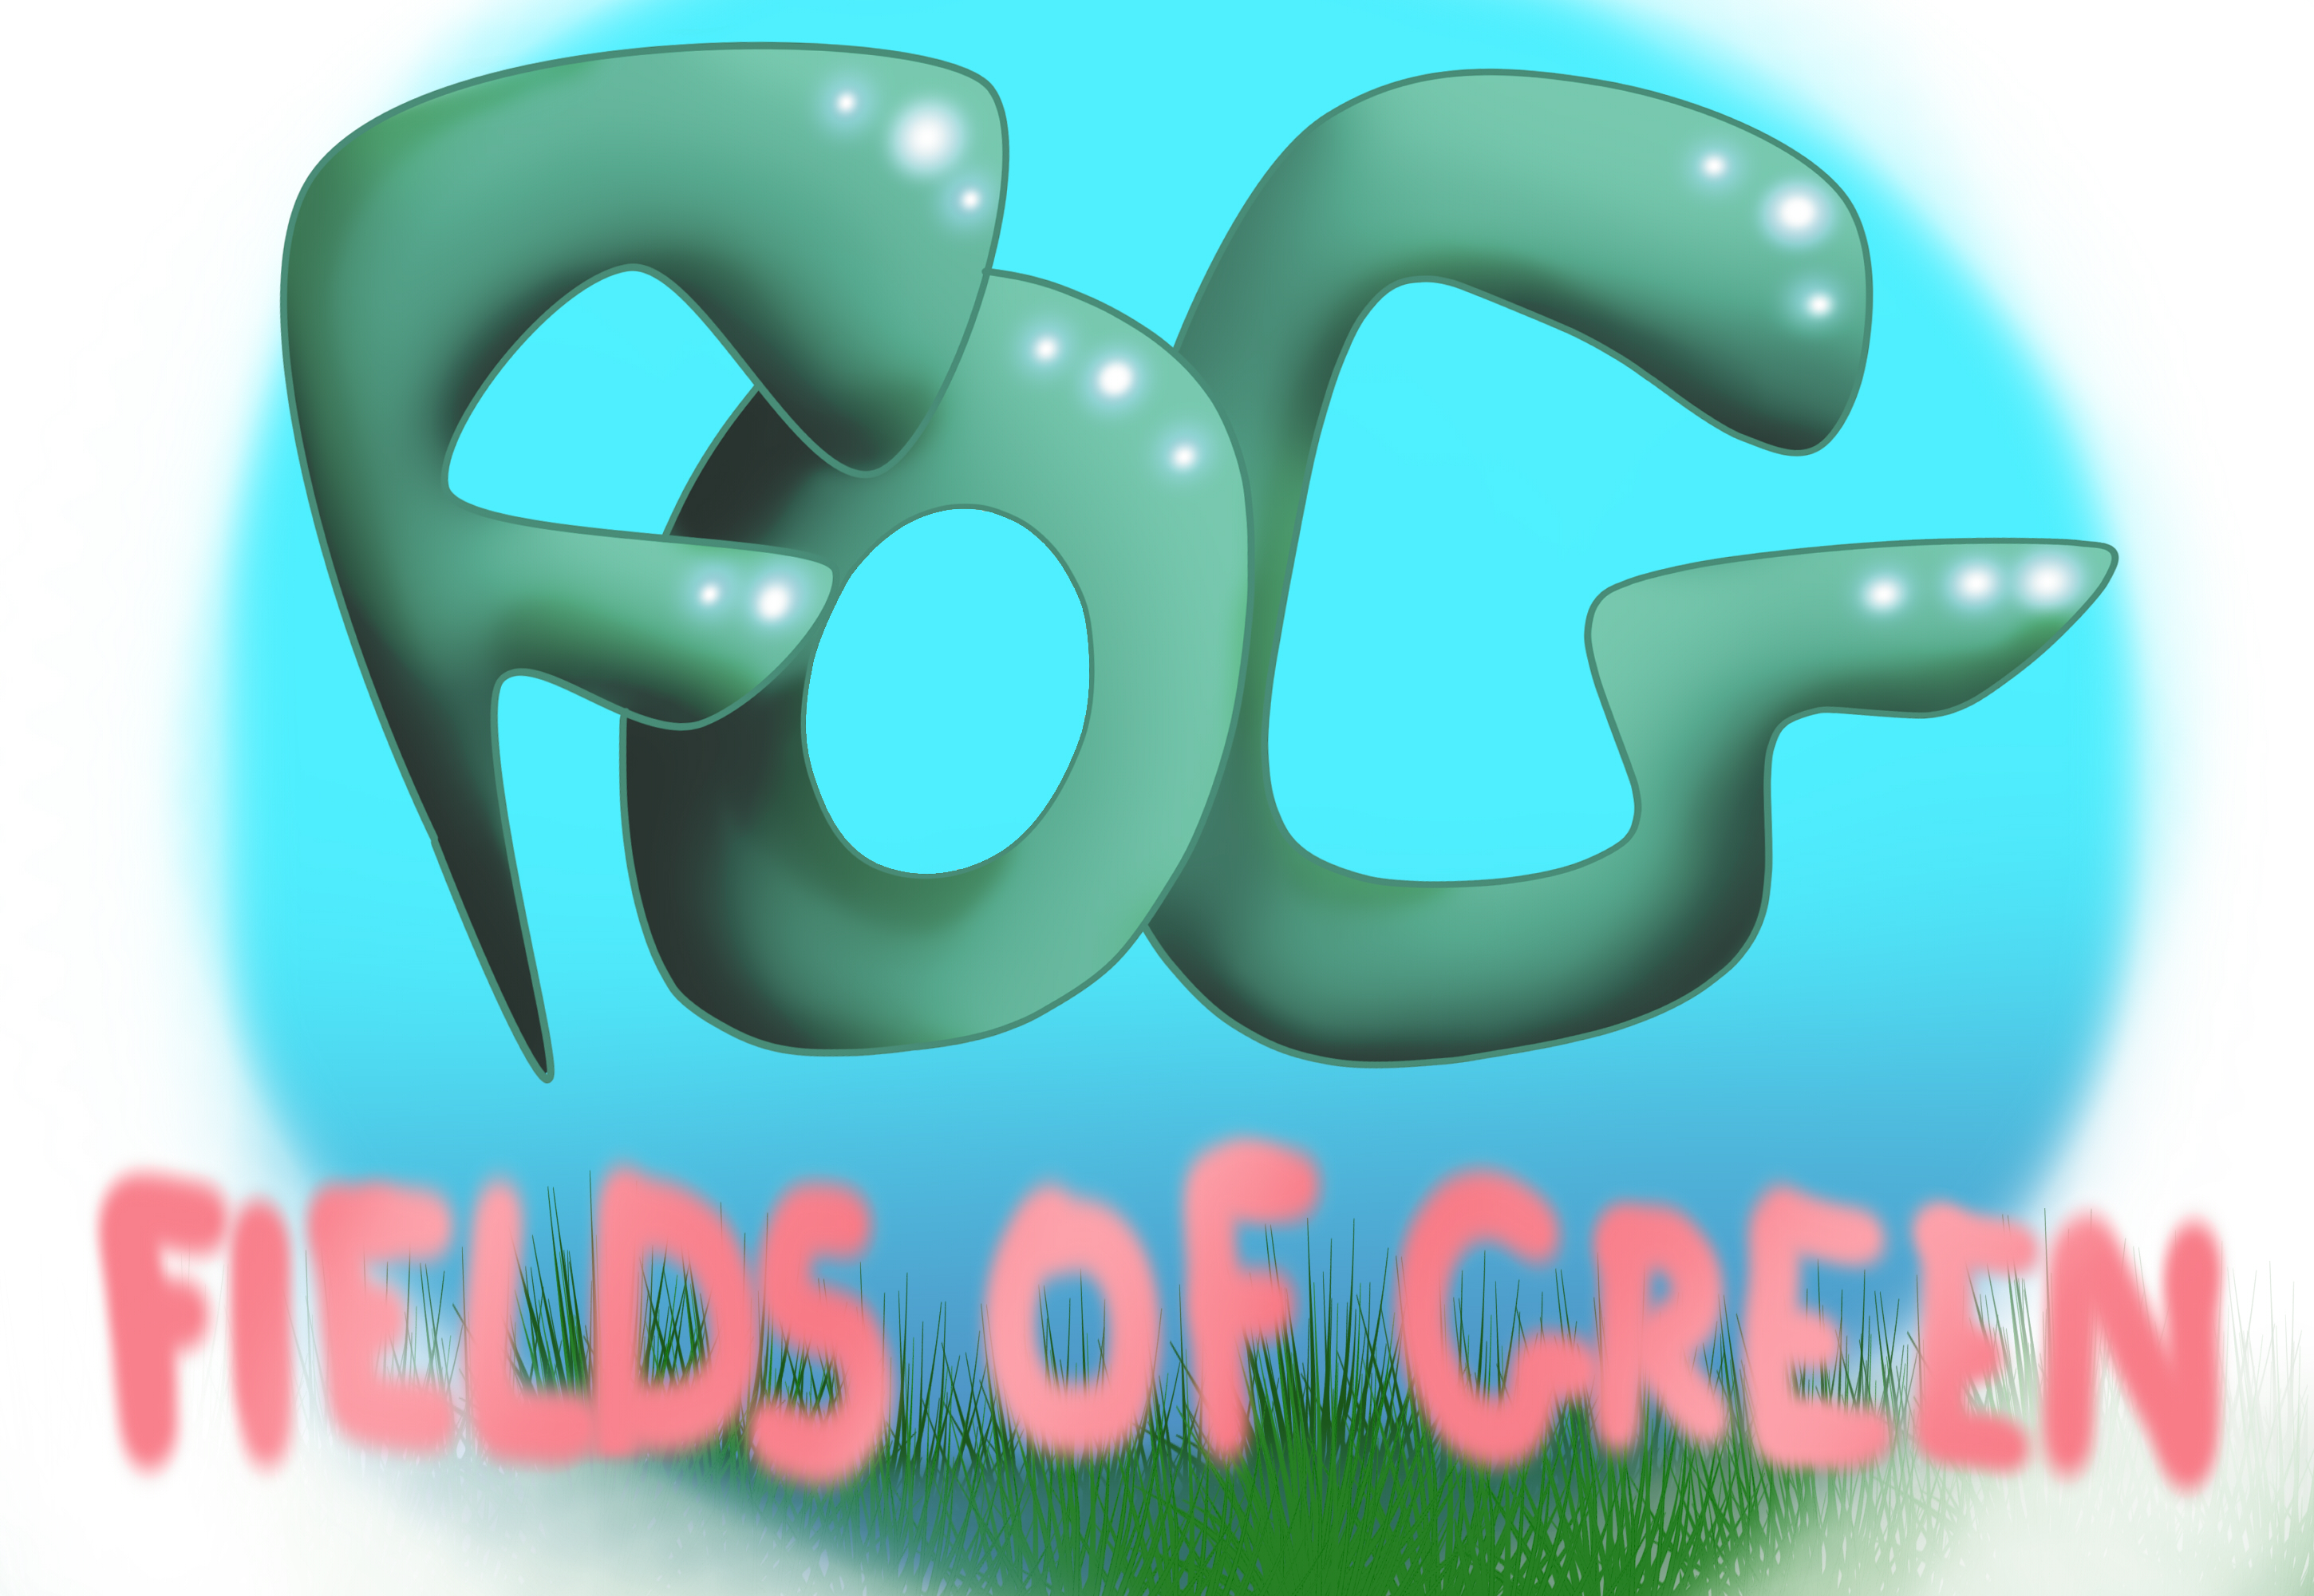 Logo Design by lilwolfchick - Entry No. 40 in the Logo Design Contest Psych-Rock Band FIELDS OF GREEN Logo Design.